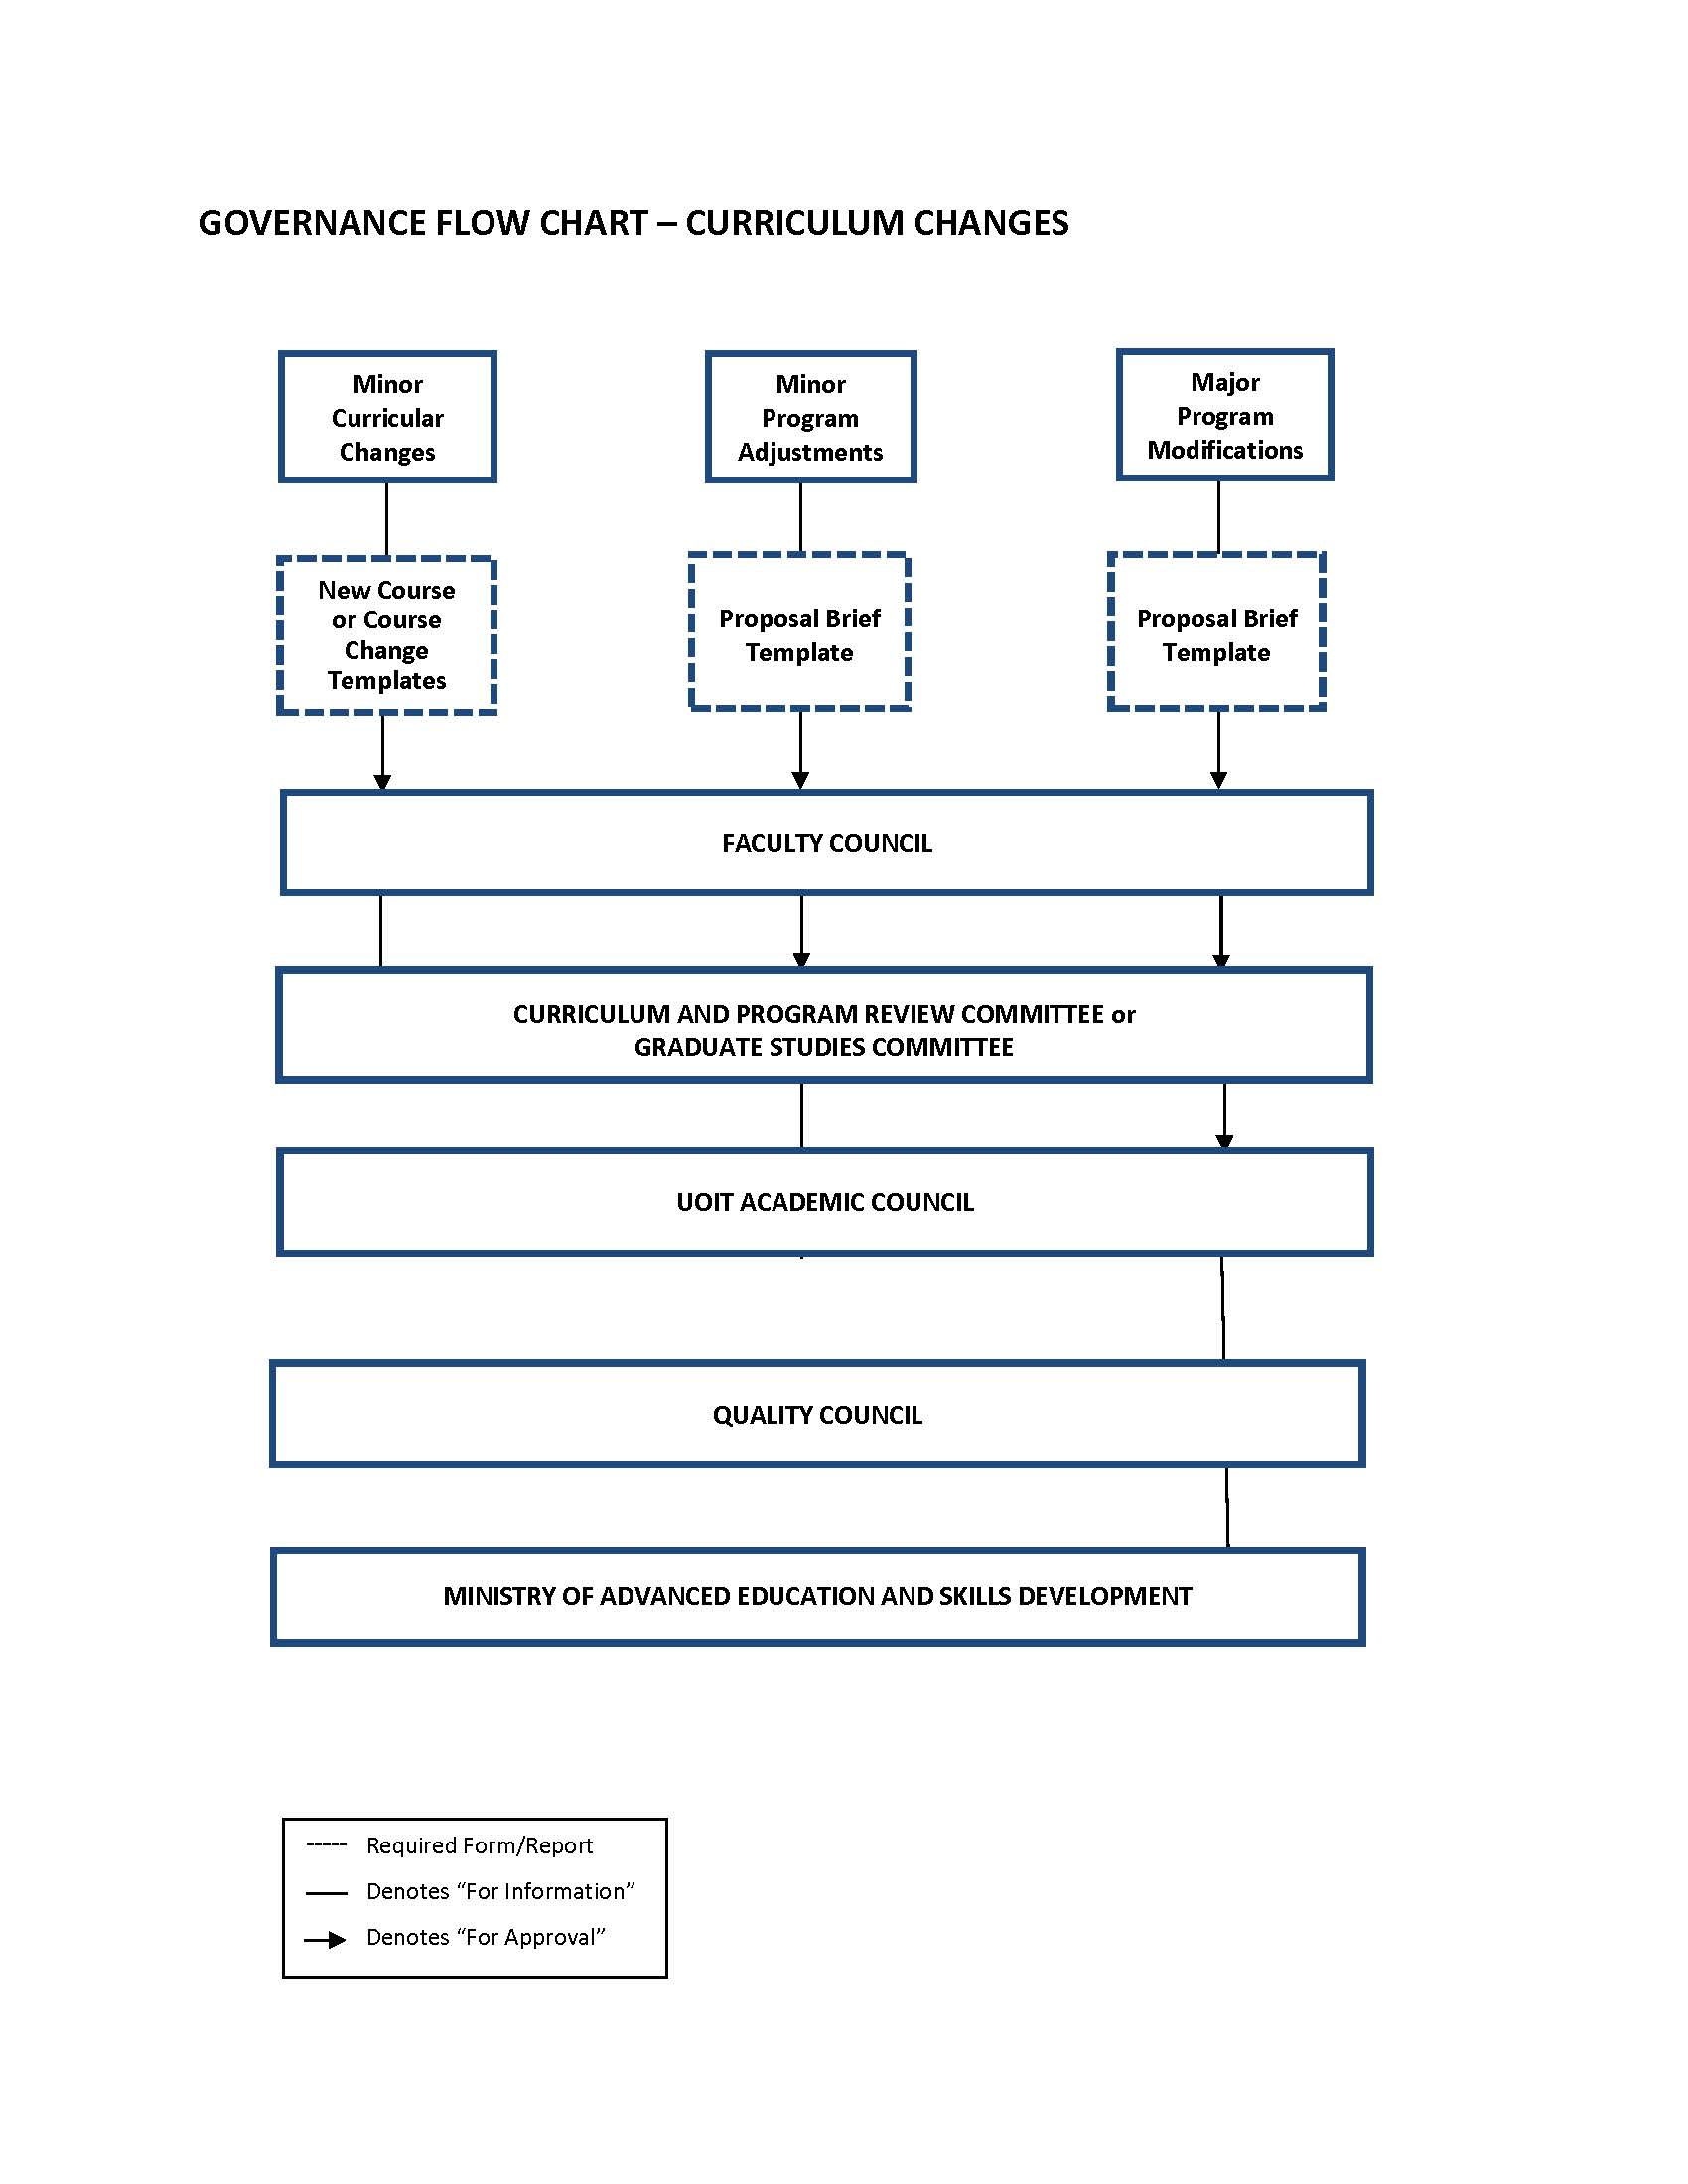 Governance flow chart centre for institutional quality enhancement contact webteamuoit for an accessible version of this flowchart nvjuhfo Images